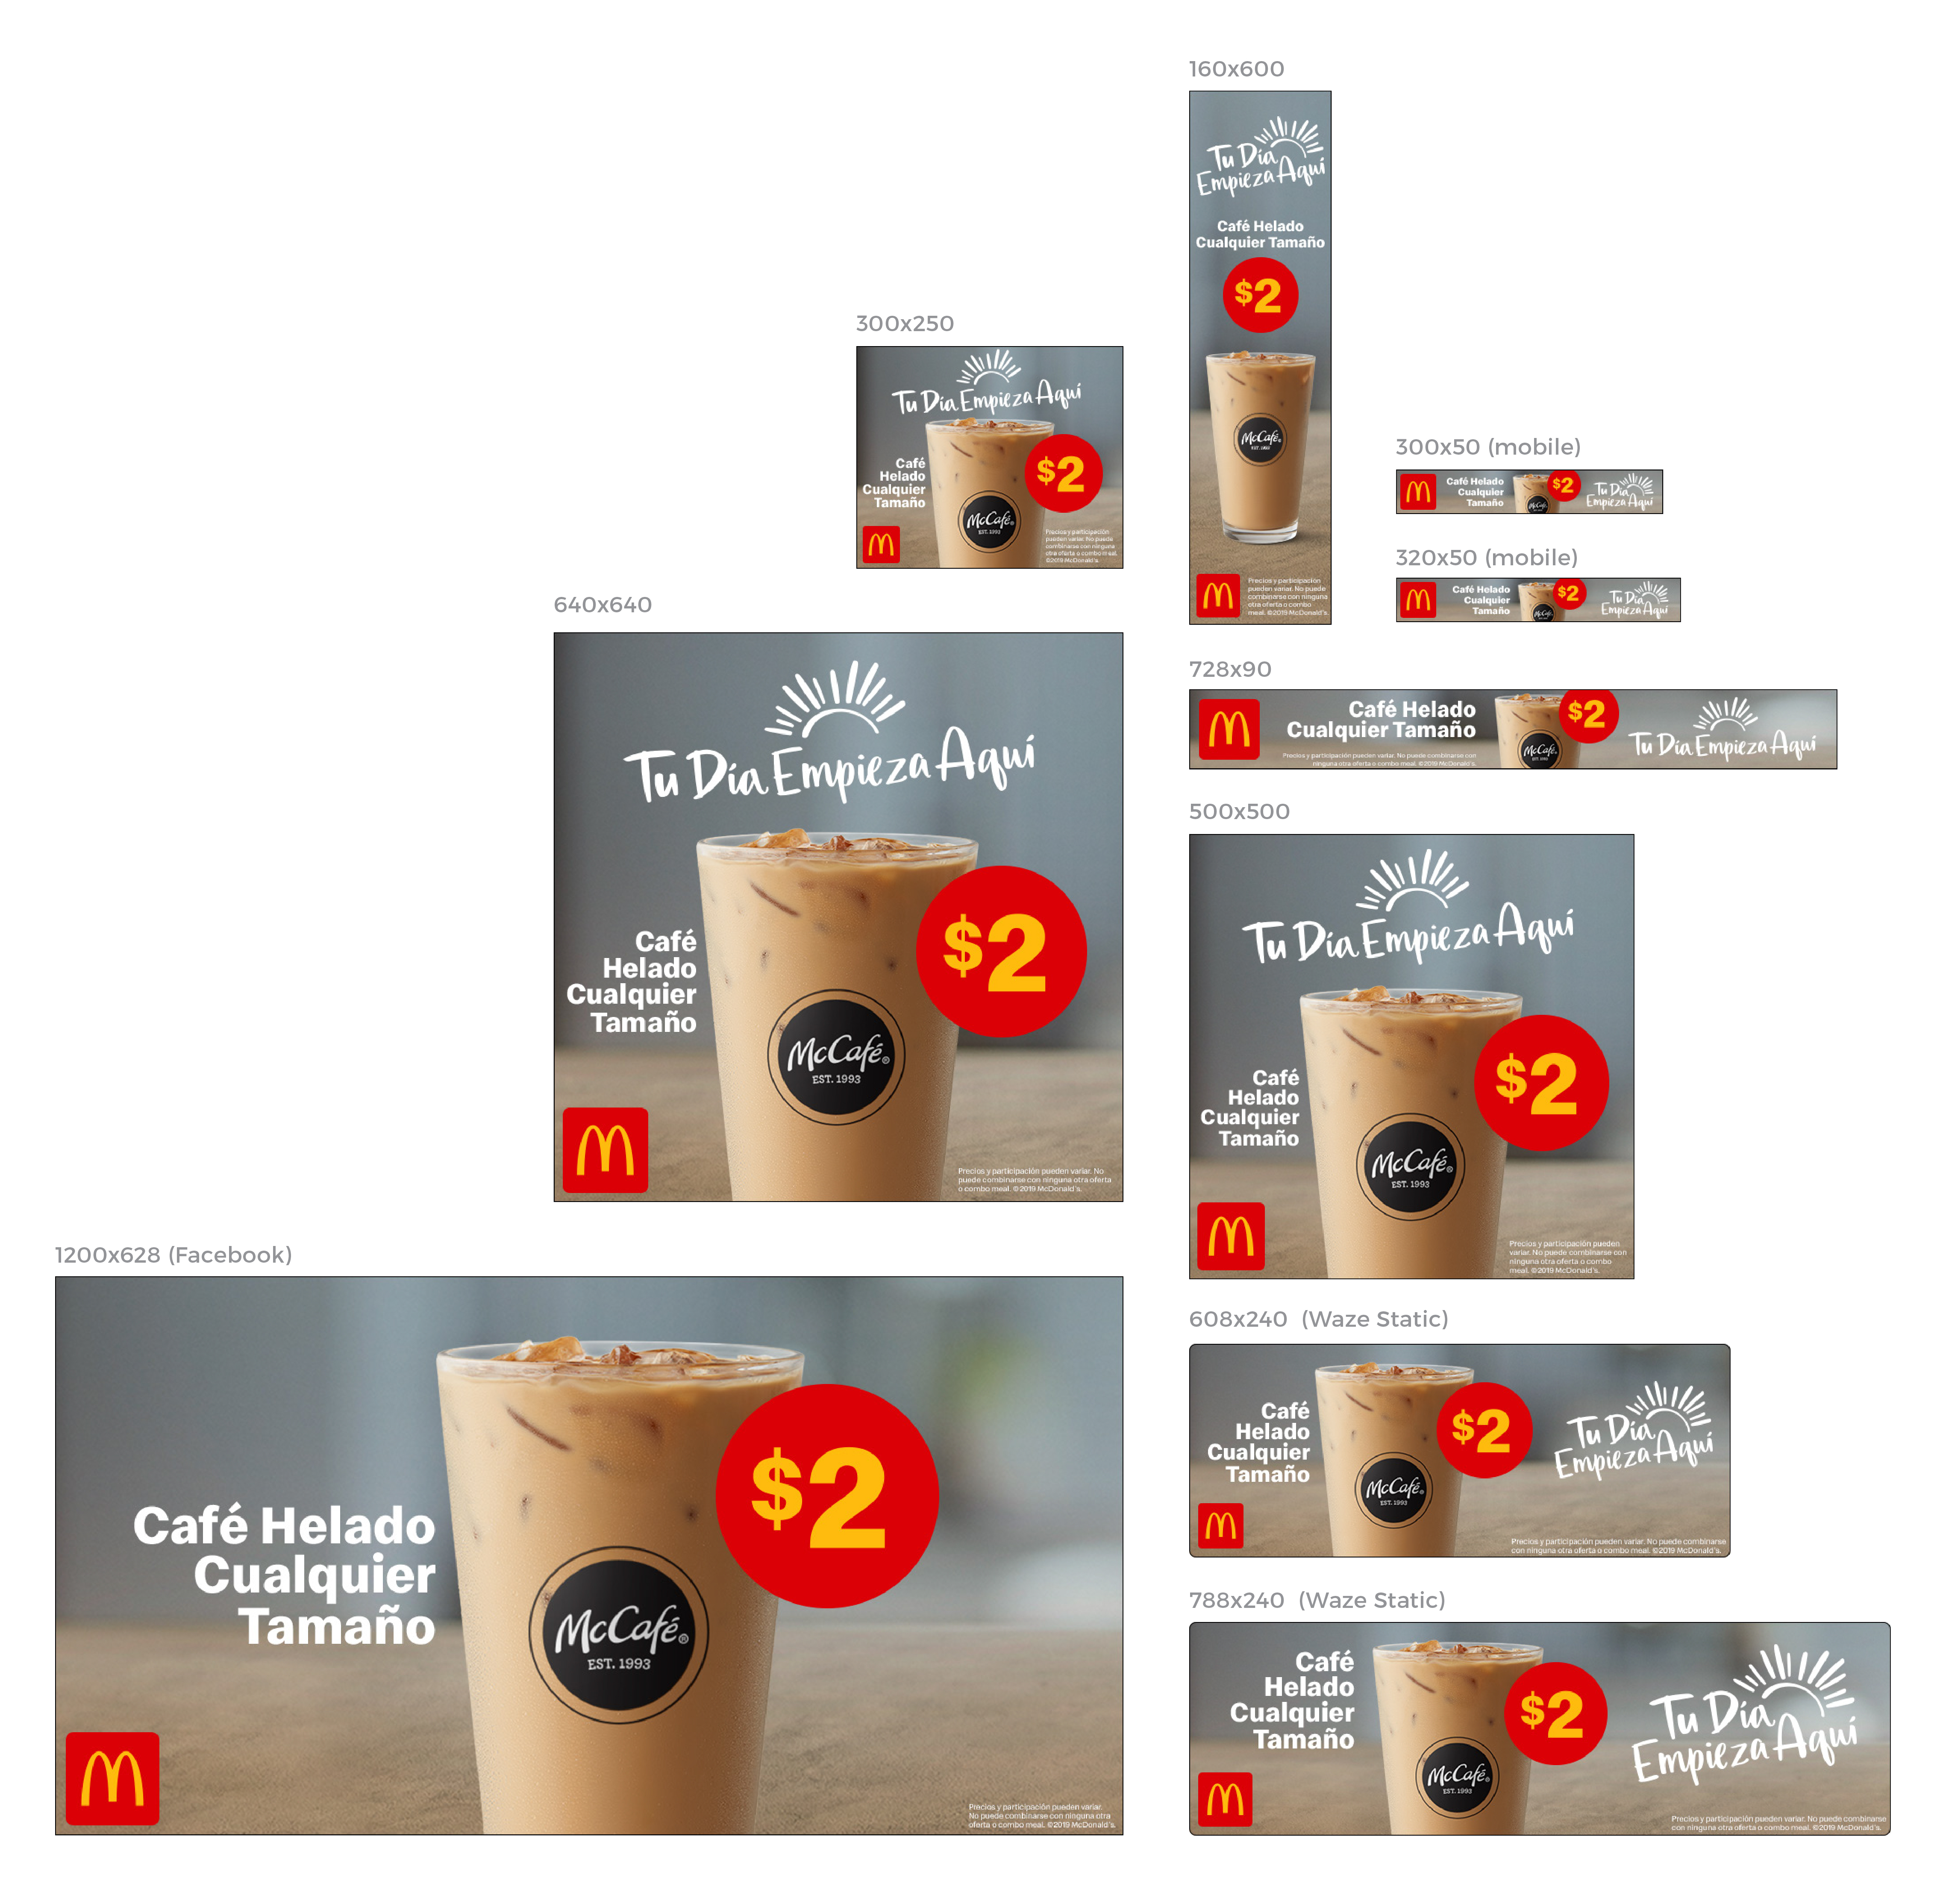 McCafe Iced Coffee Digital Advertising Campaign - Featured in the San Francisco Region for the General Consumer Market (GCM)